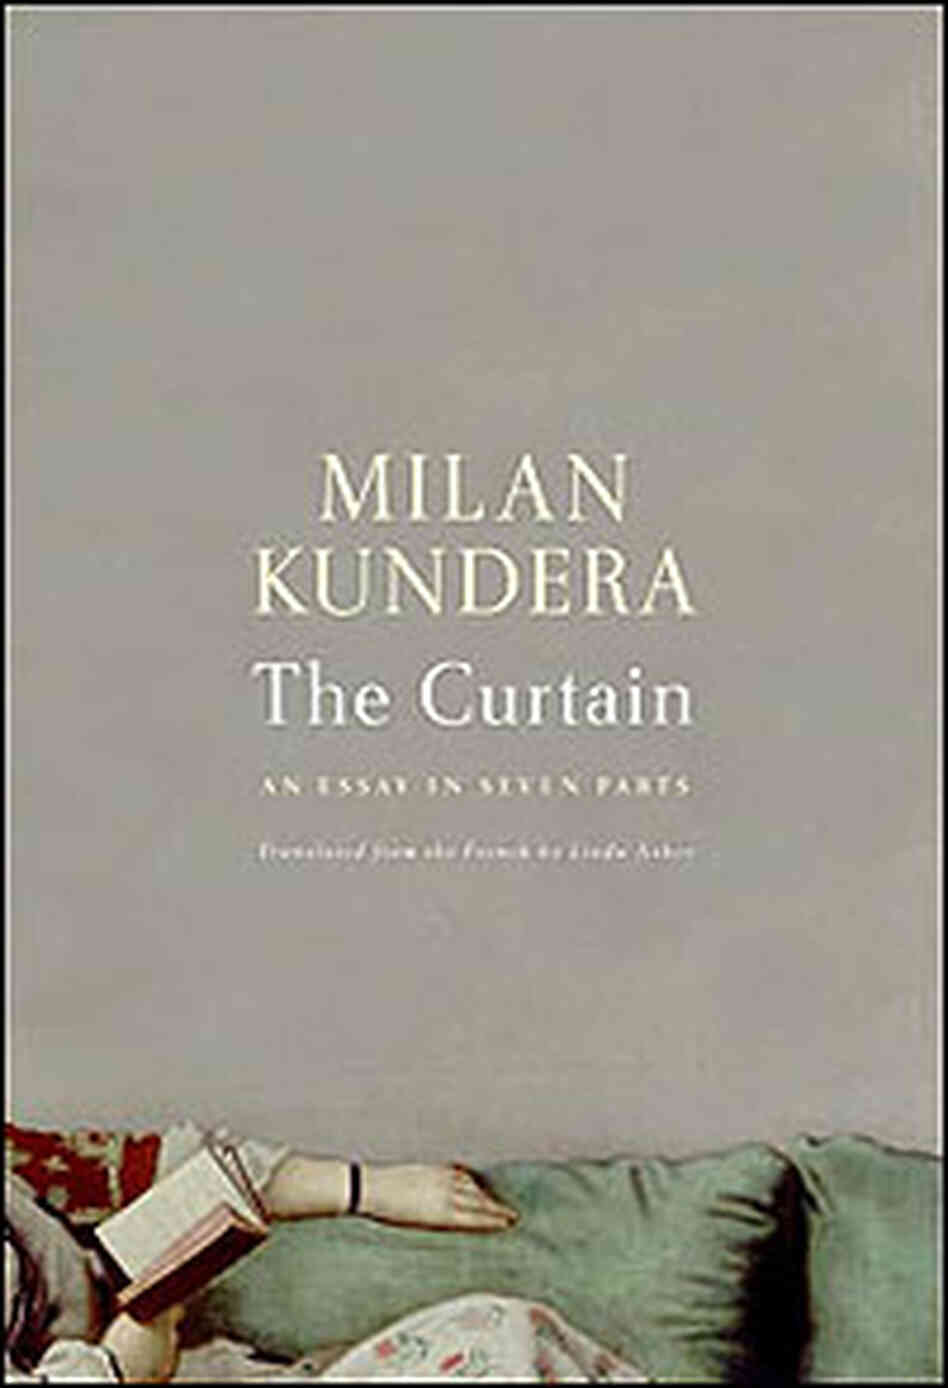 essay kundera milan work The curtain: book summary and reviews of the curtain by milan kundera the real work of a novel is not bound up in the specifics of any one language: what makes a novel matter is its ability to reveal some previously unknown aspect of our existence in the curtain, kundera skillfully describes how the best novels do.